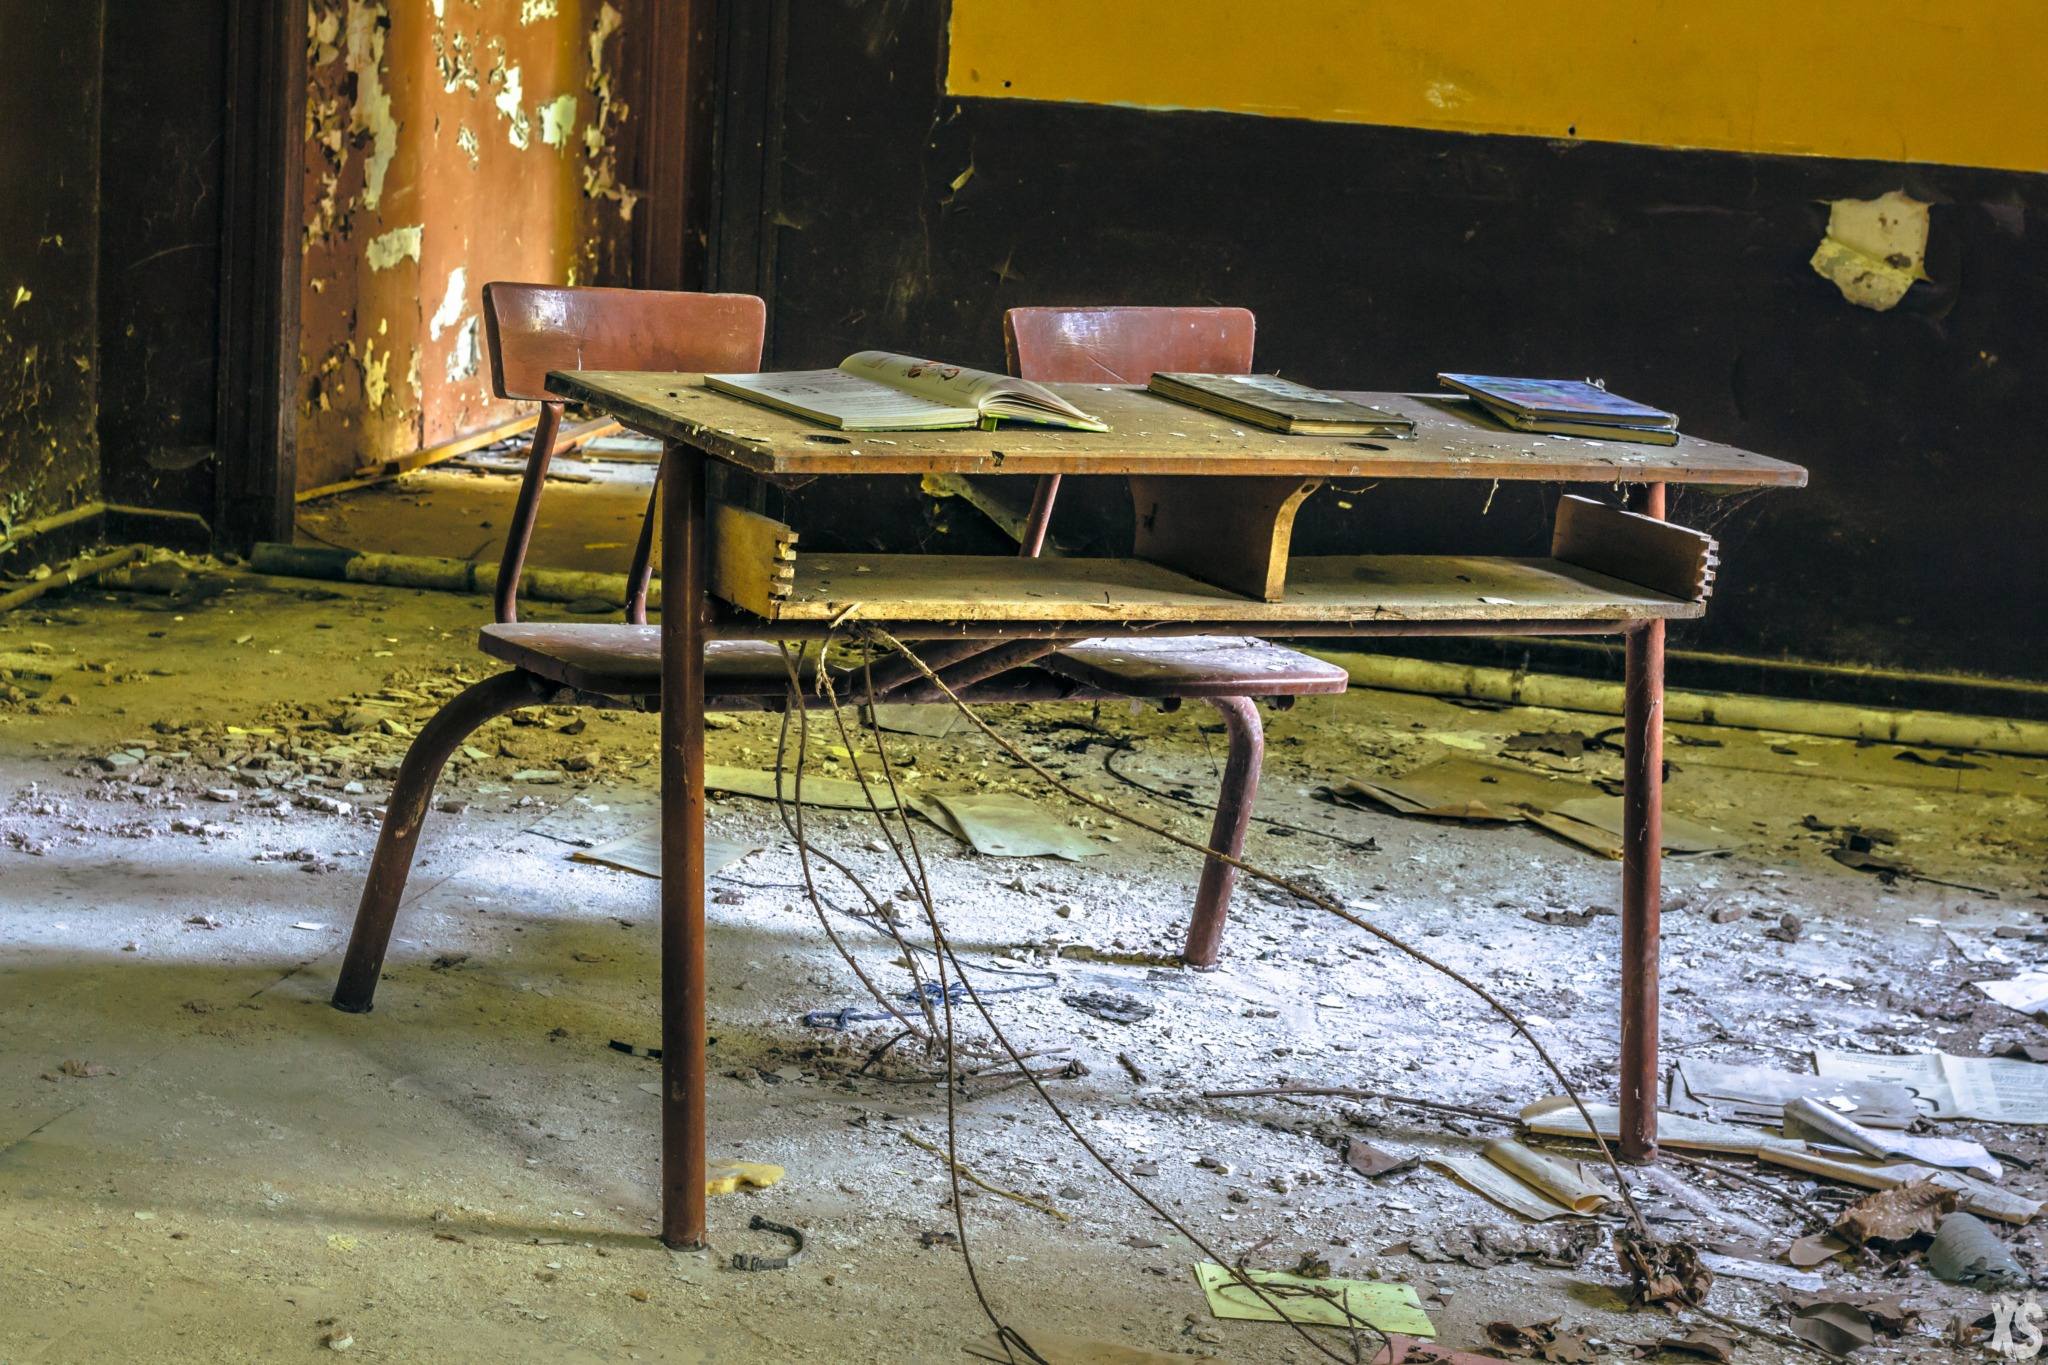 Abandoned school in France | urbexsession.com/en/joseph-vacher-school | Urbex France